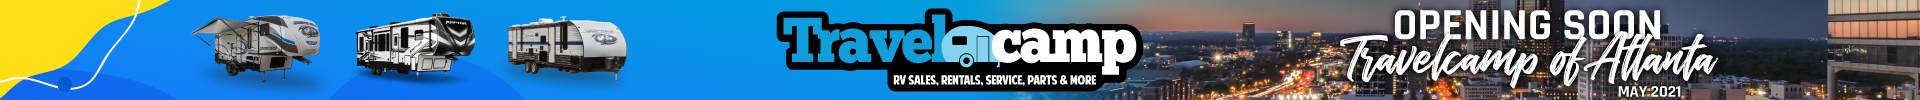 Locations | Travelcamp | RV Sales Rentals Service | Florida